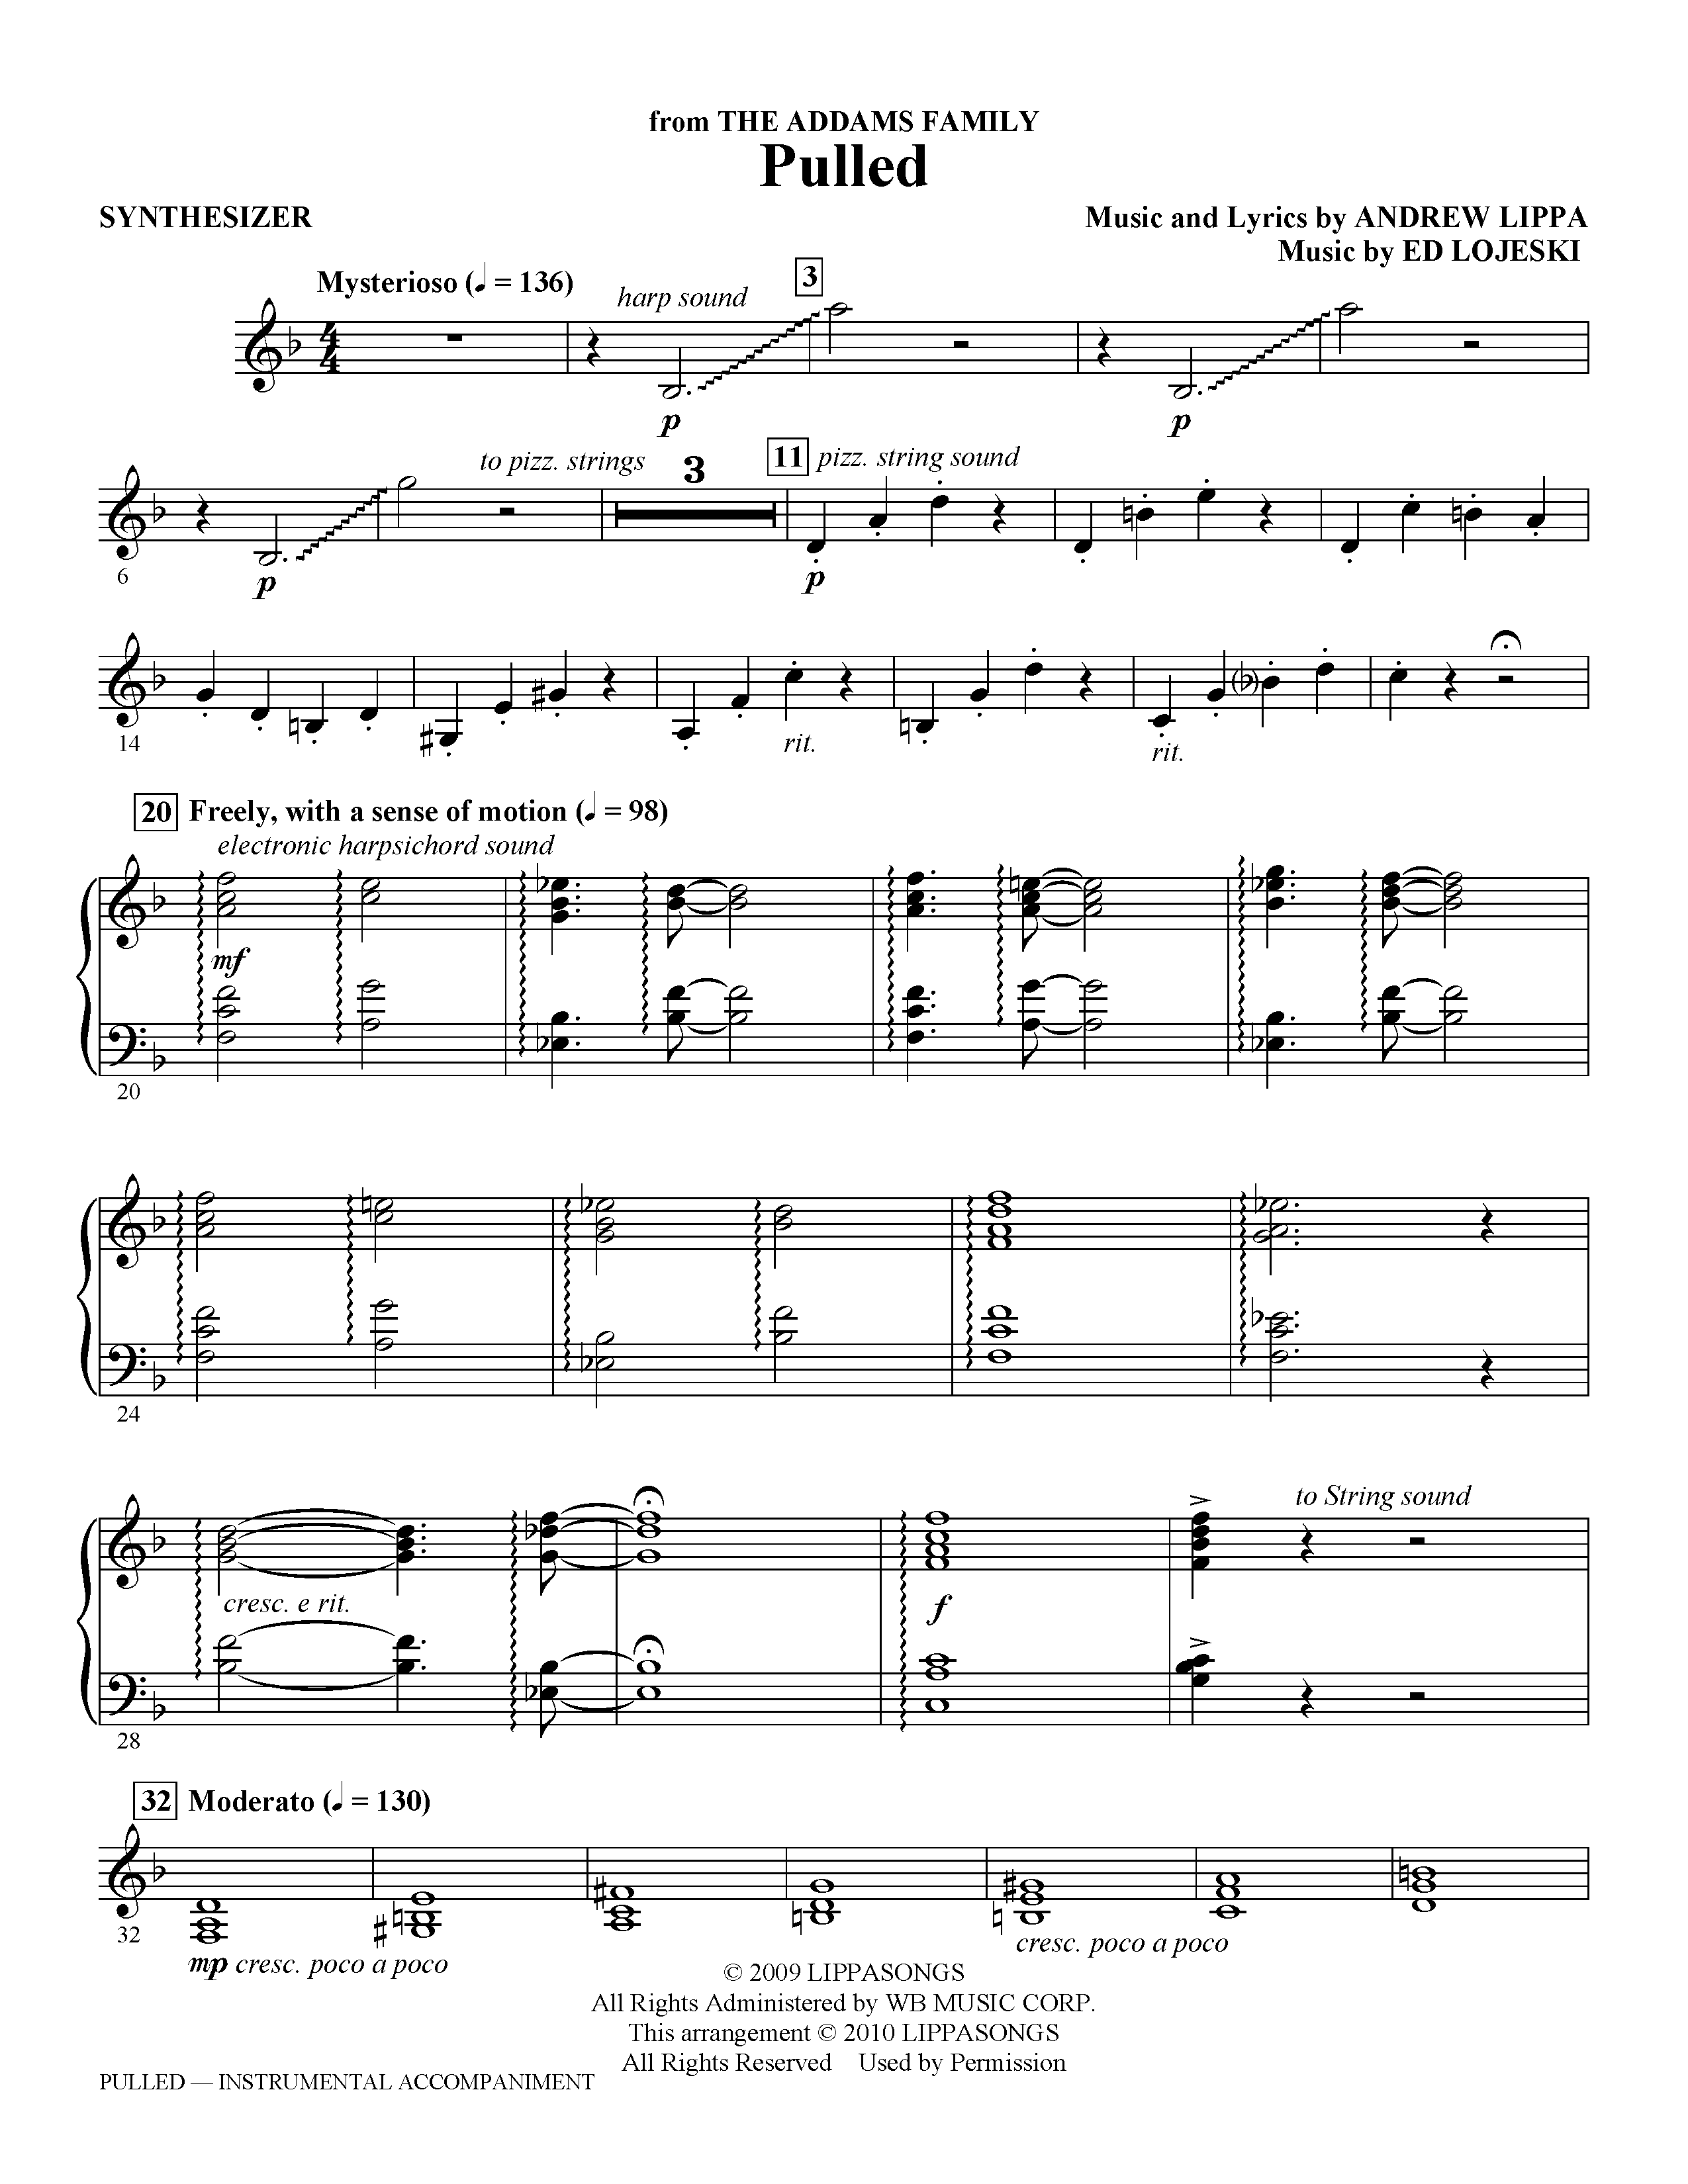 Ed Lojeski Pulled (from The Addams Family) - Synthesizer sheet music notes and chords